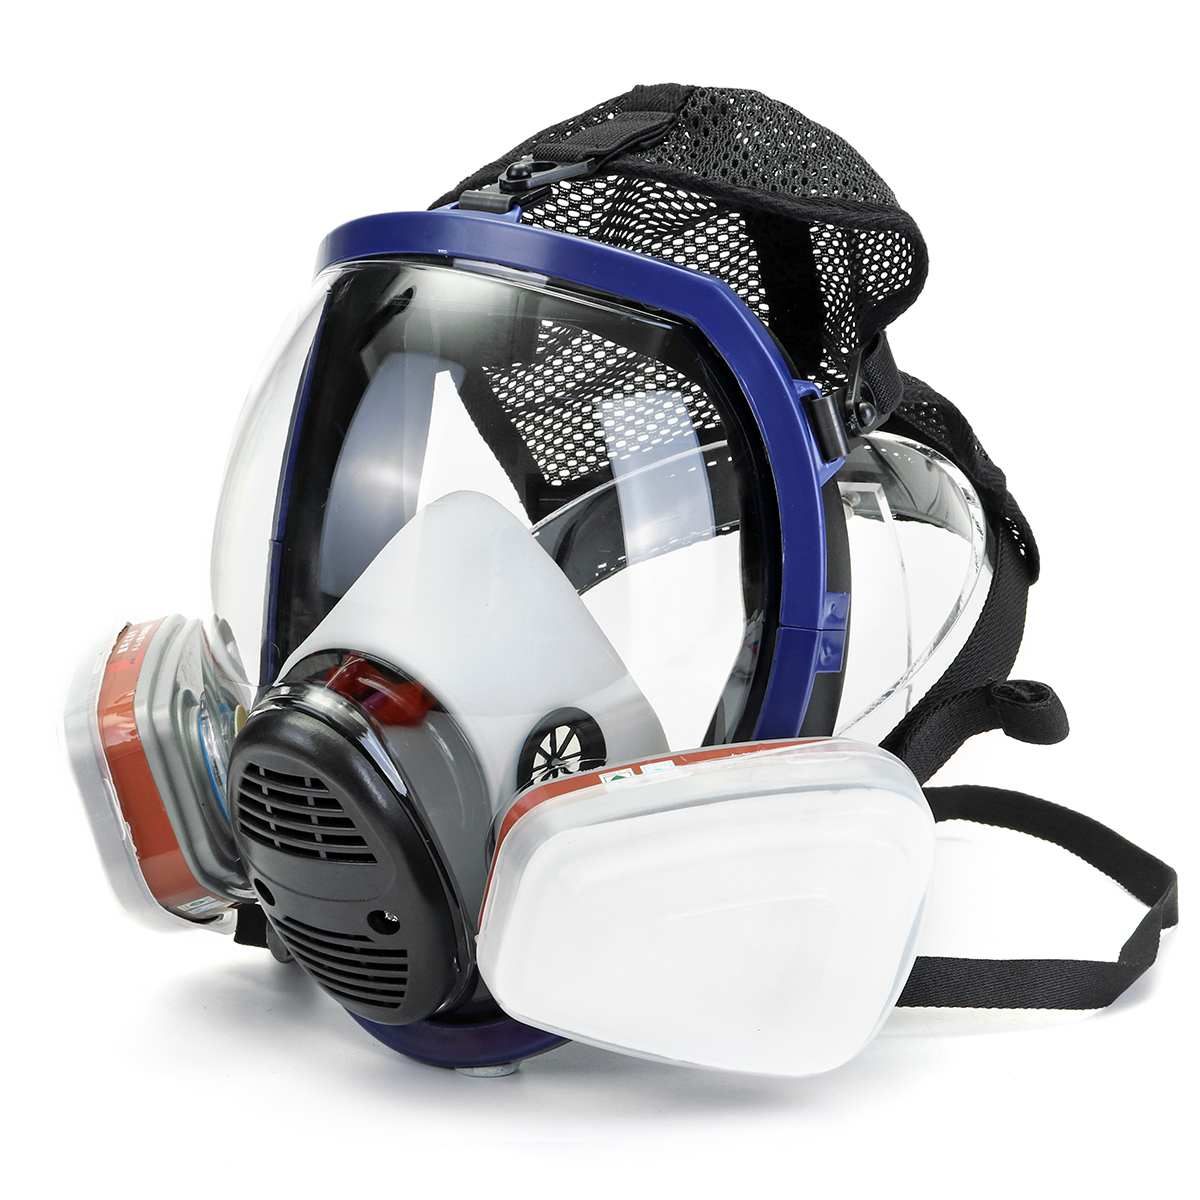 15 In 1 Gas Mask For 6800 Full Face Facepiece Dust Mask Respirator Painting Spraying Chemical Laboratory Medical Safety Work